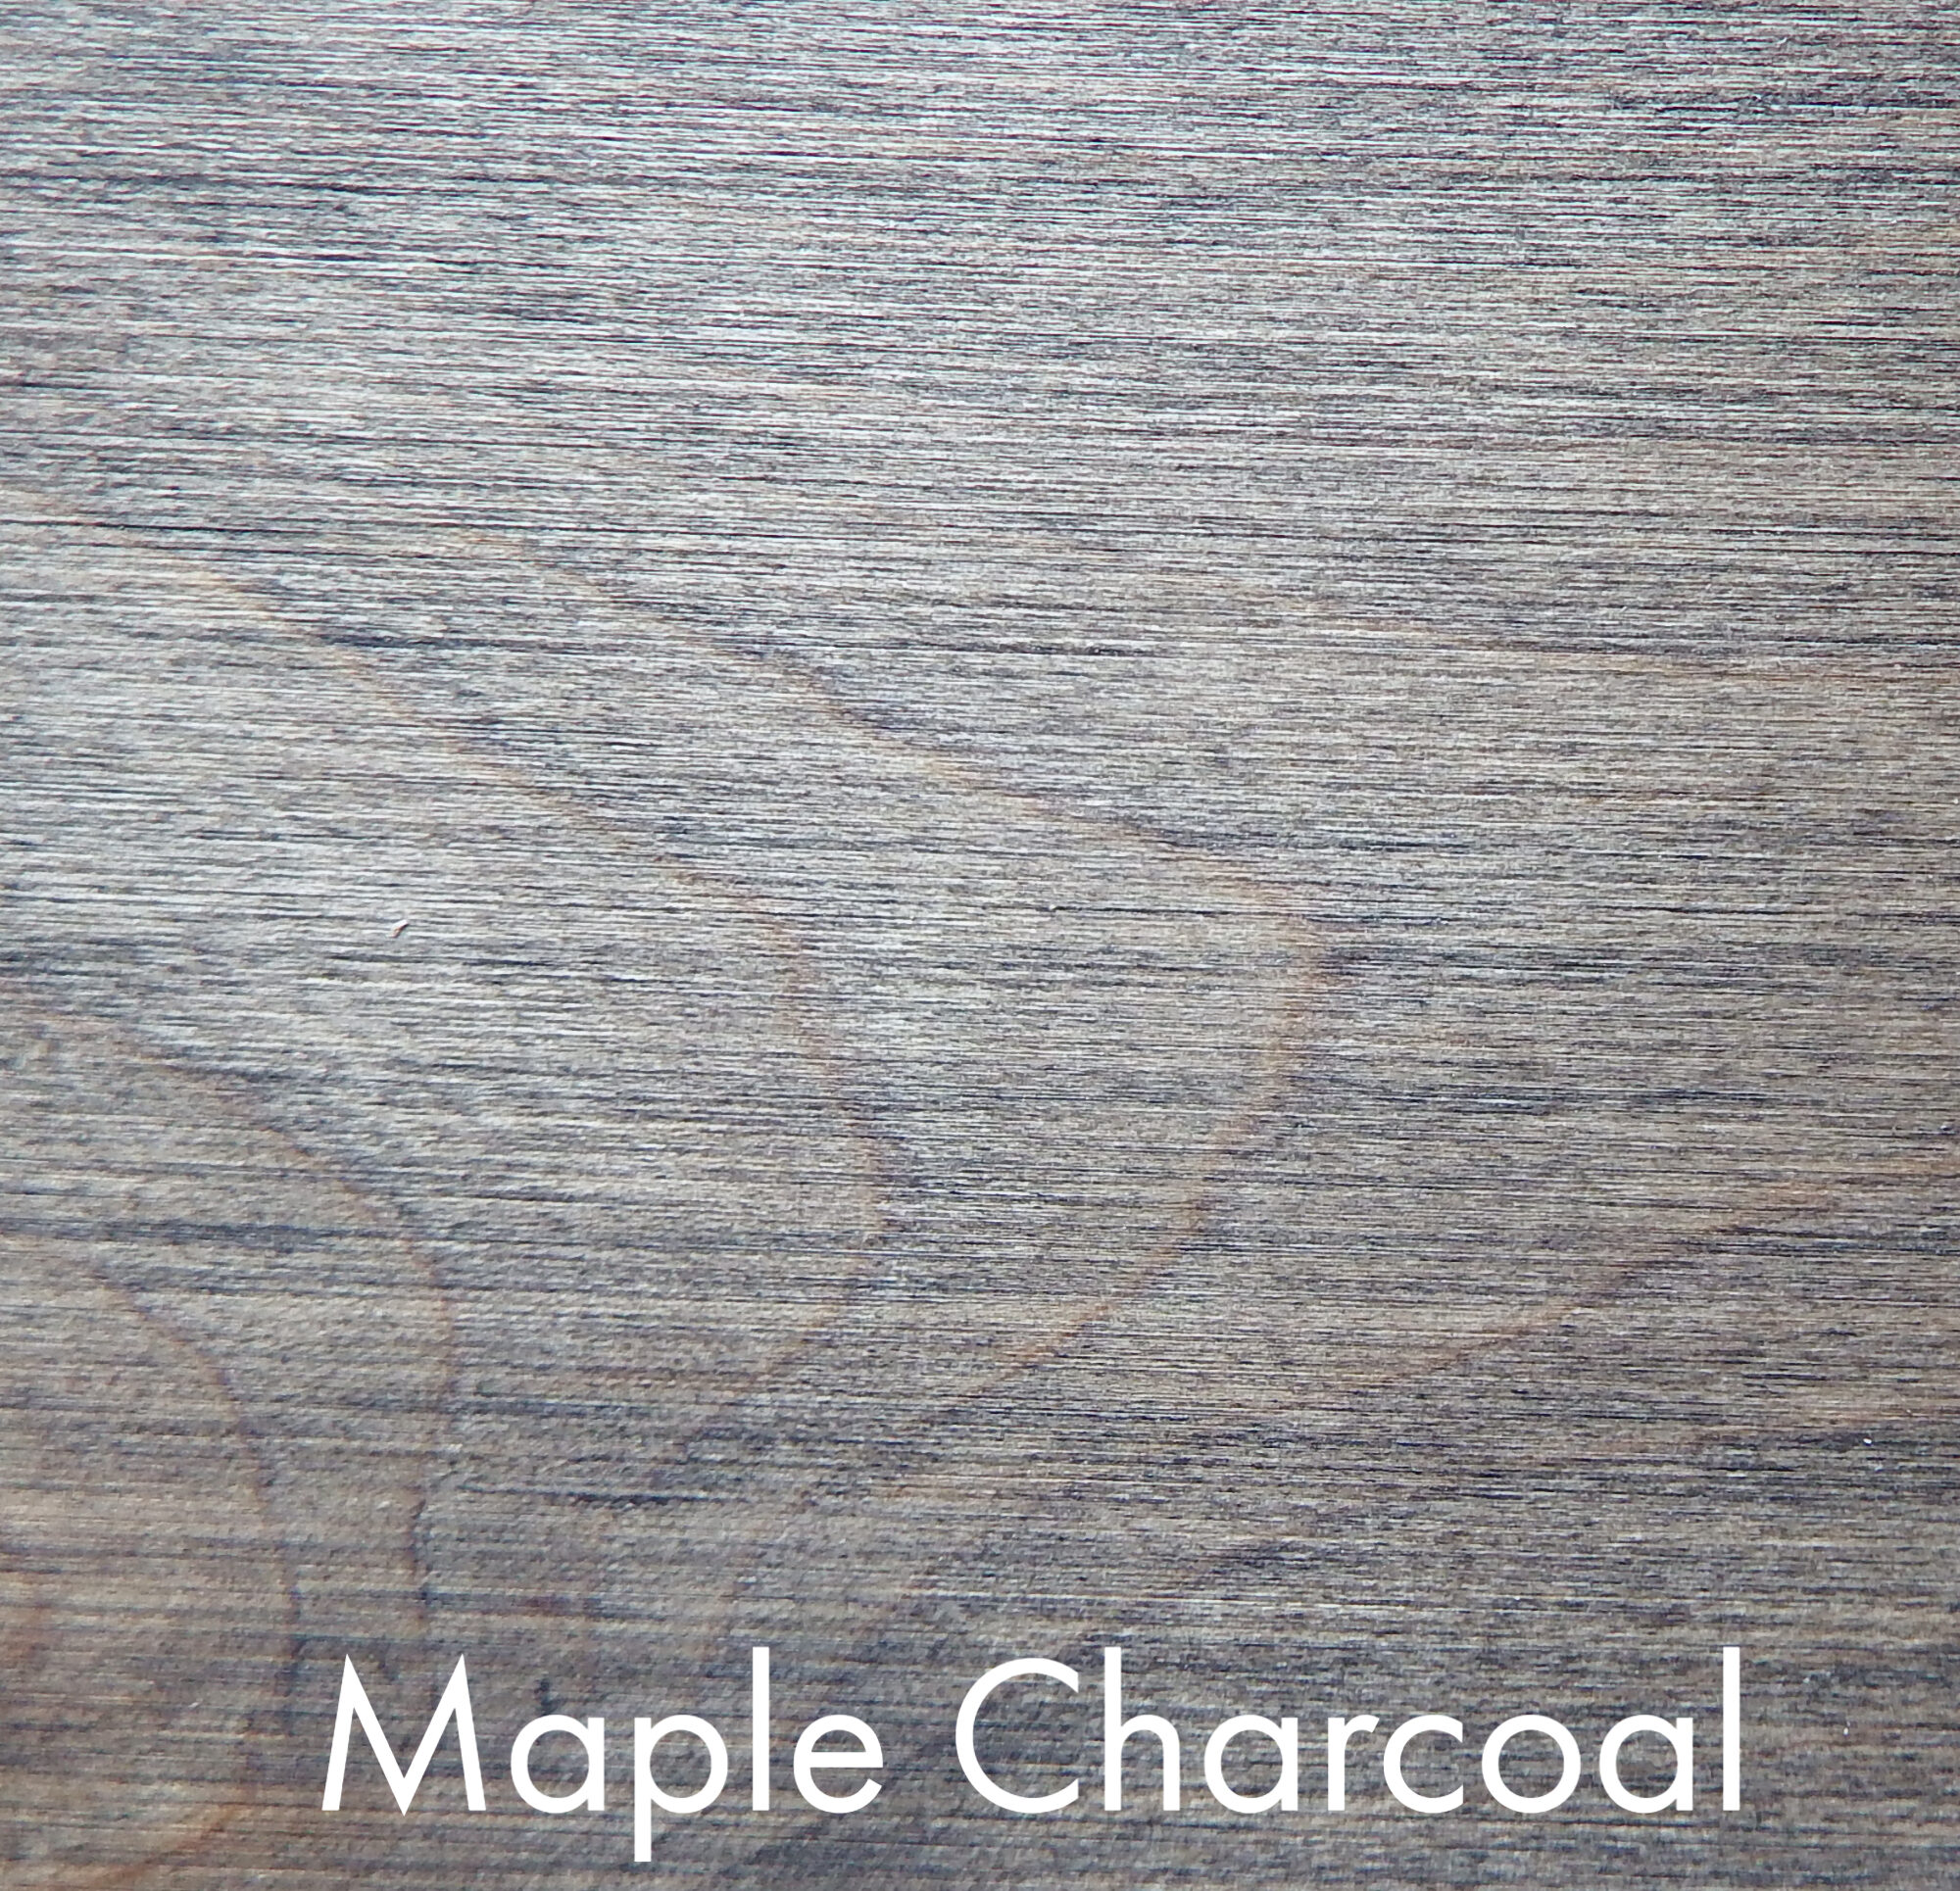 Maple Charcoal